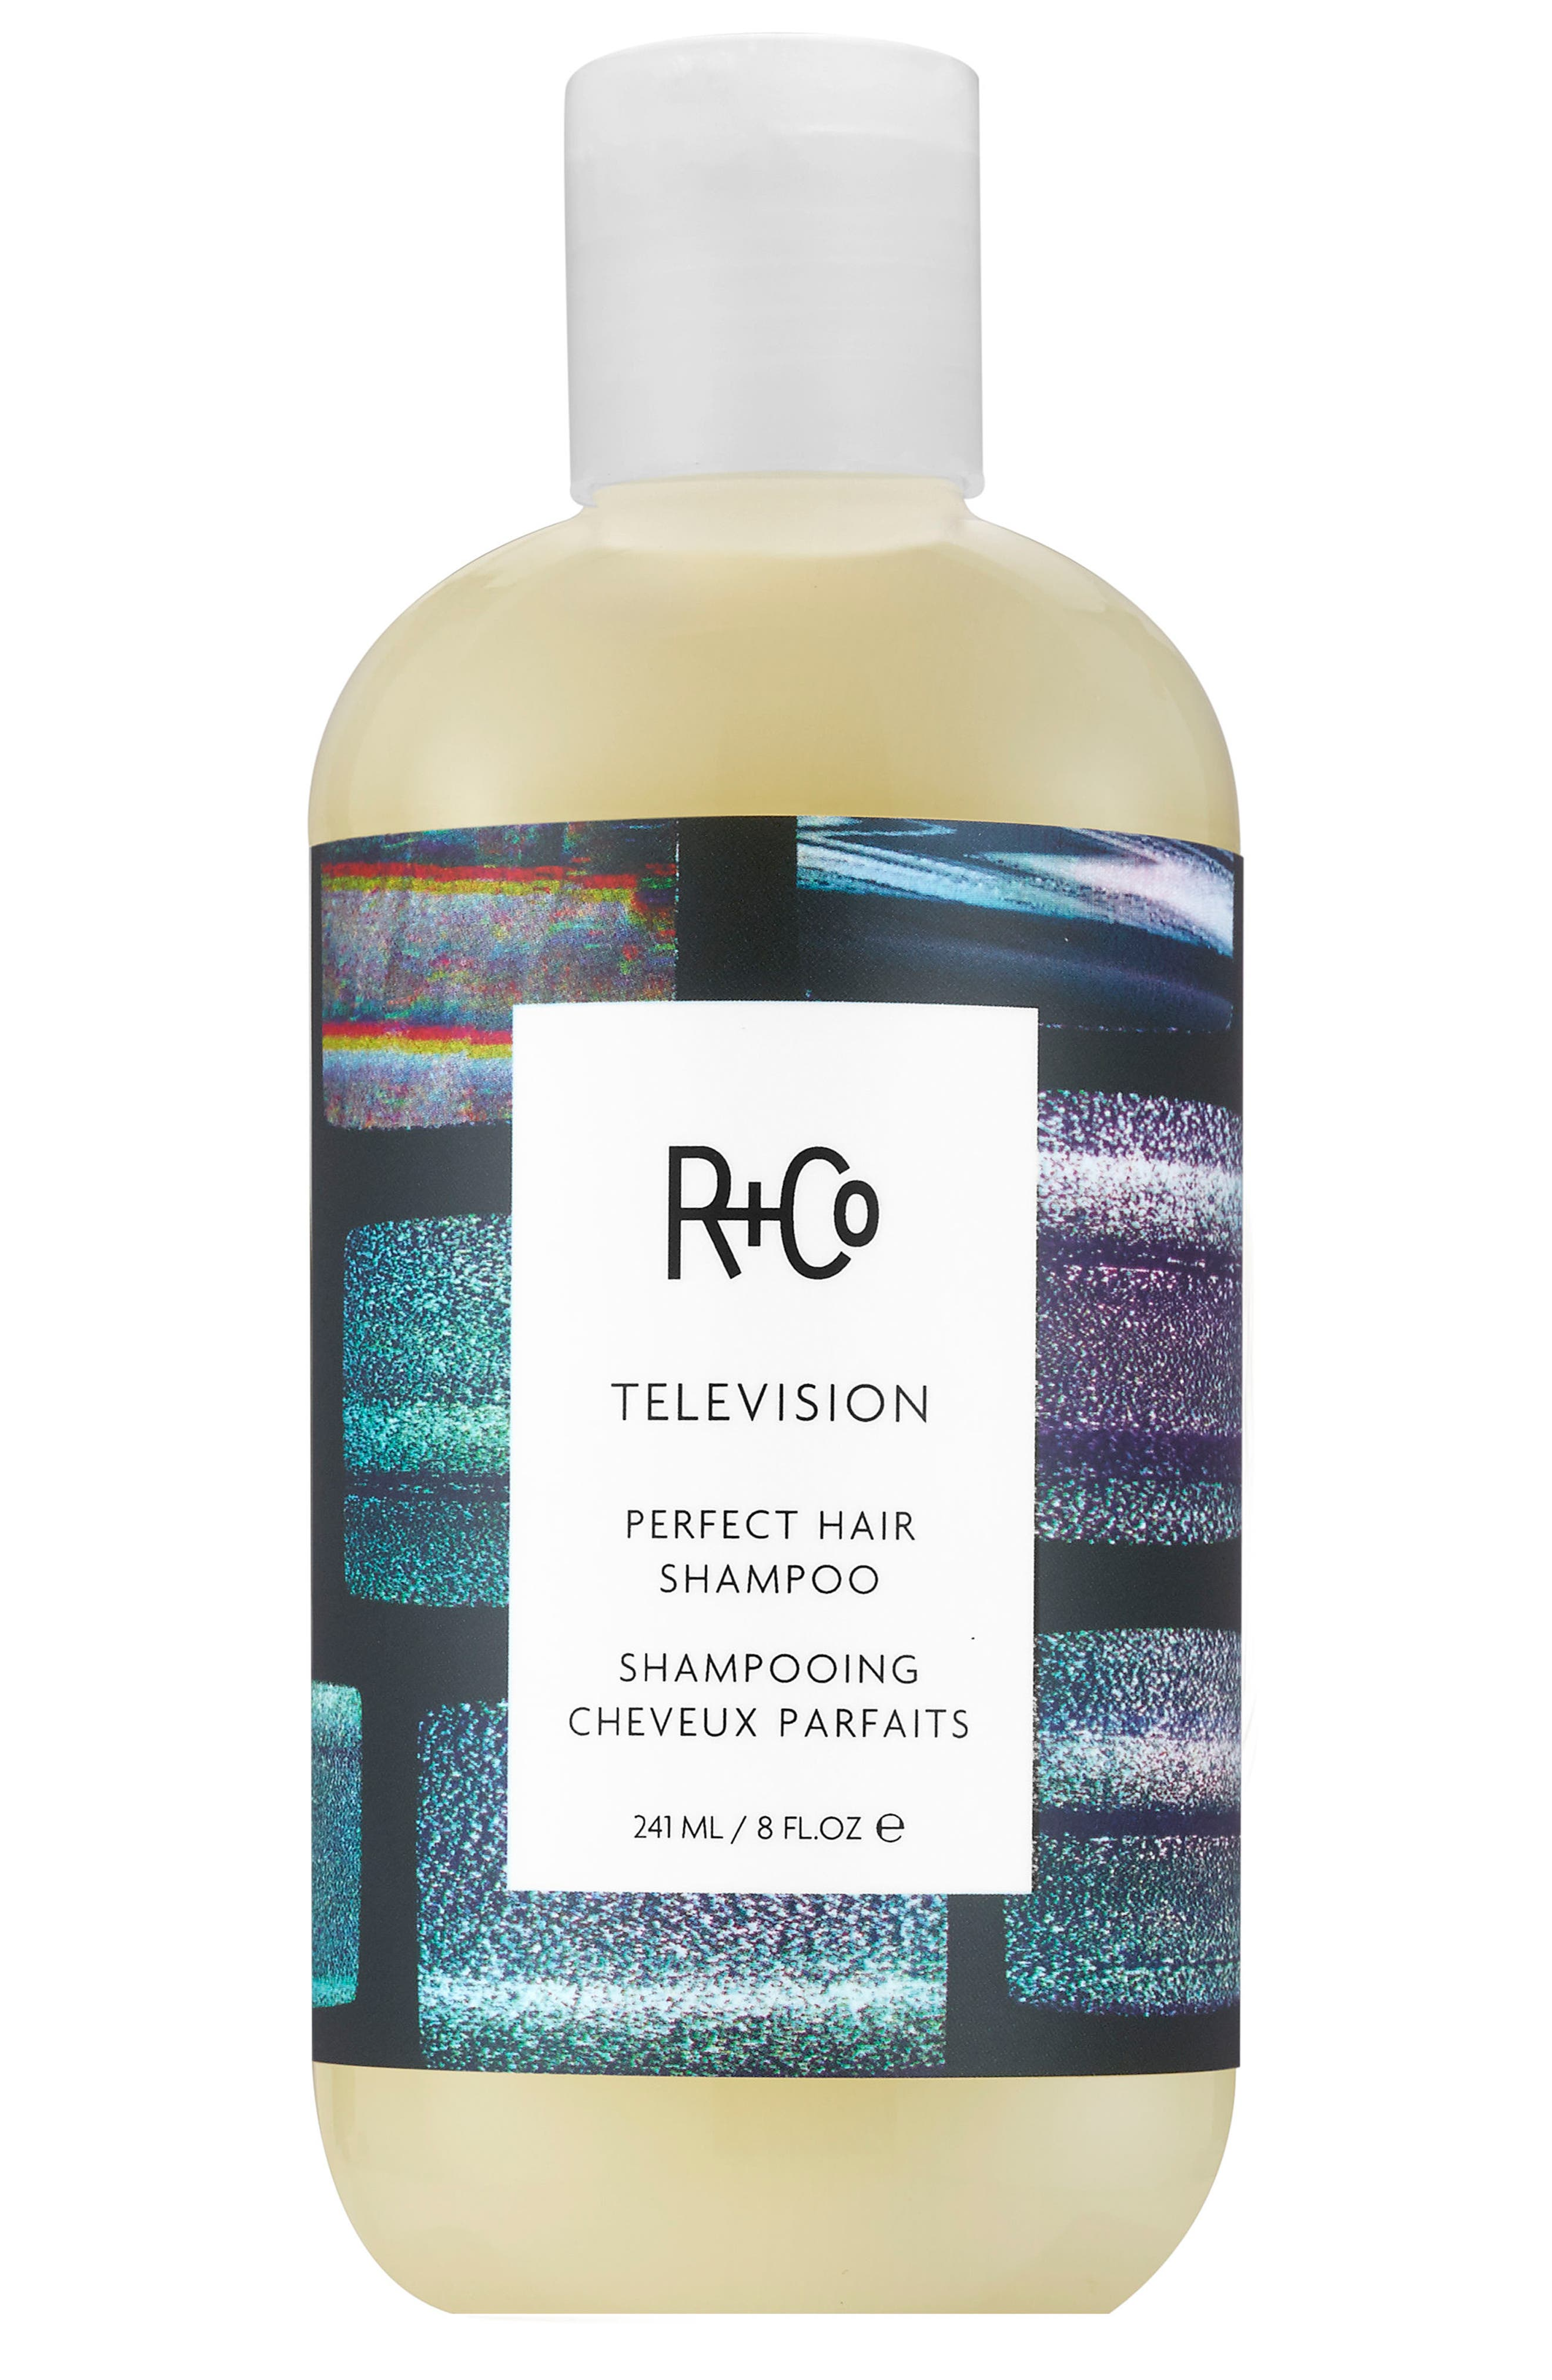 Main Image - SPACE.NK.apothecary R+Co Television Perfect Hair Shampoo